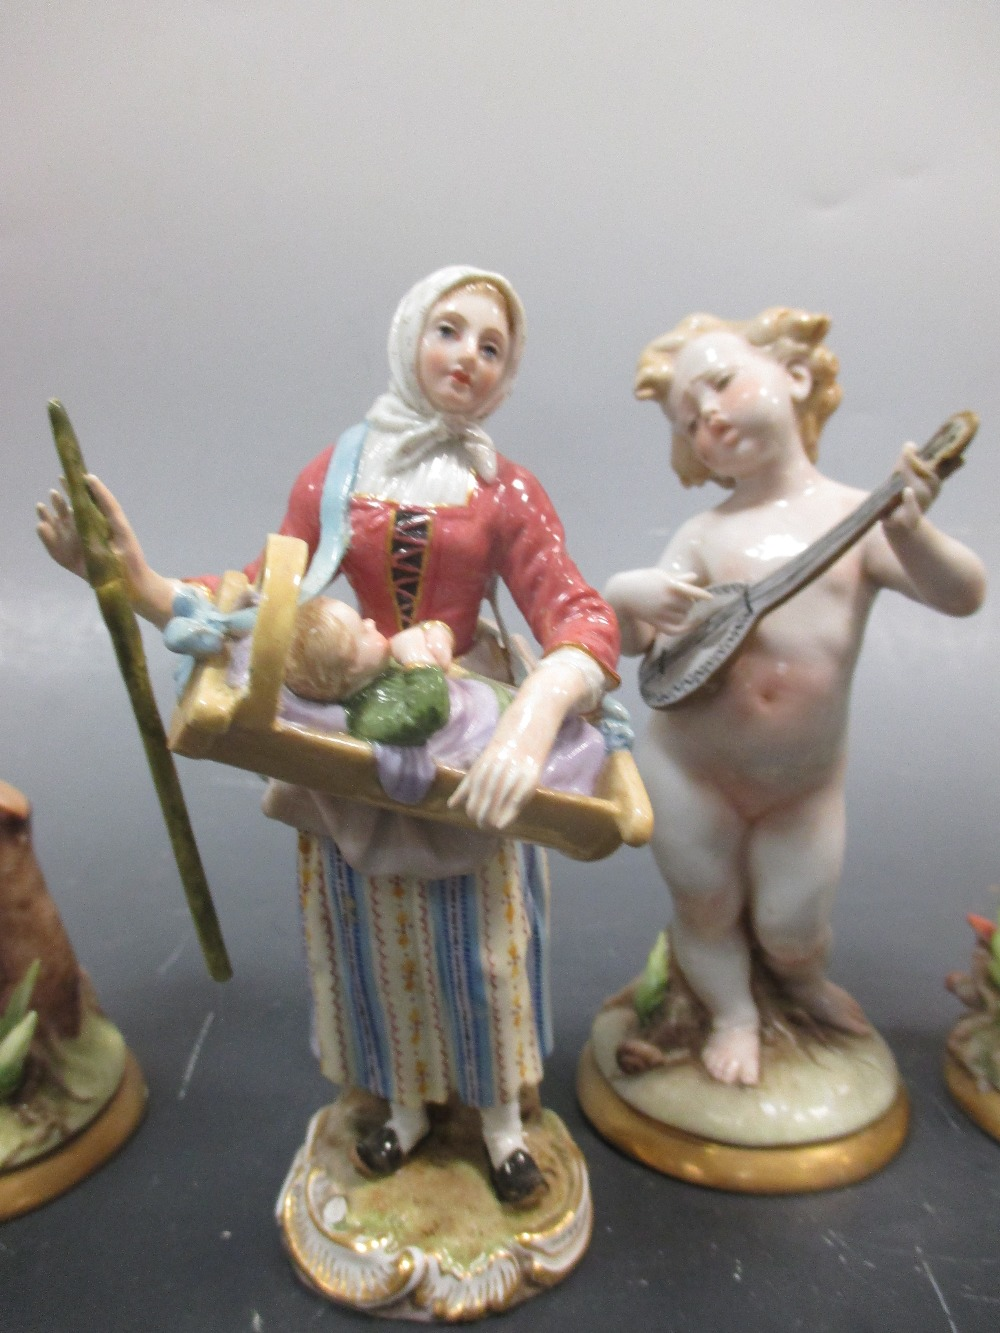 Lot 23 - A Meissen figure of a lady carrying a small baby in a crib, Two small Royal Copenhagen animalier